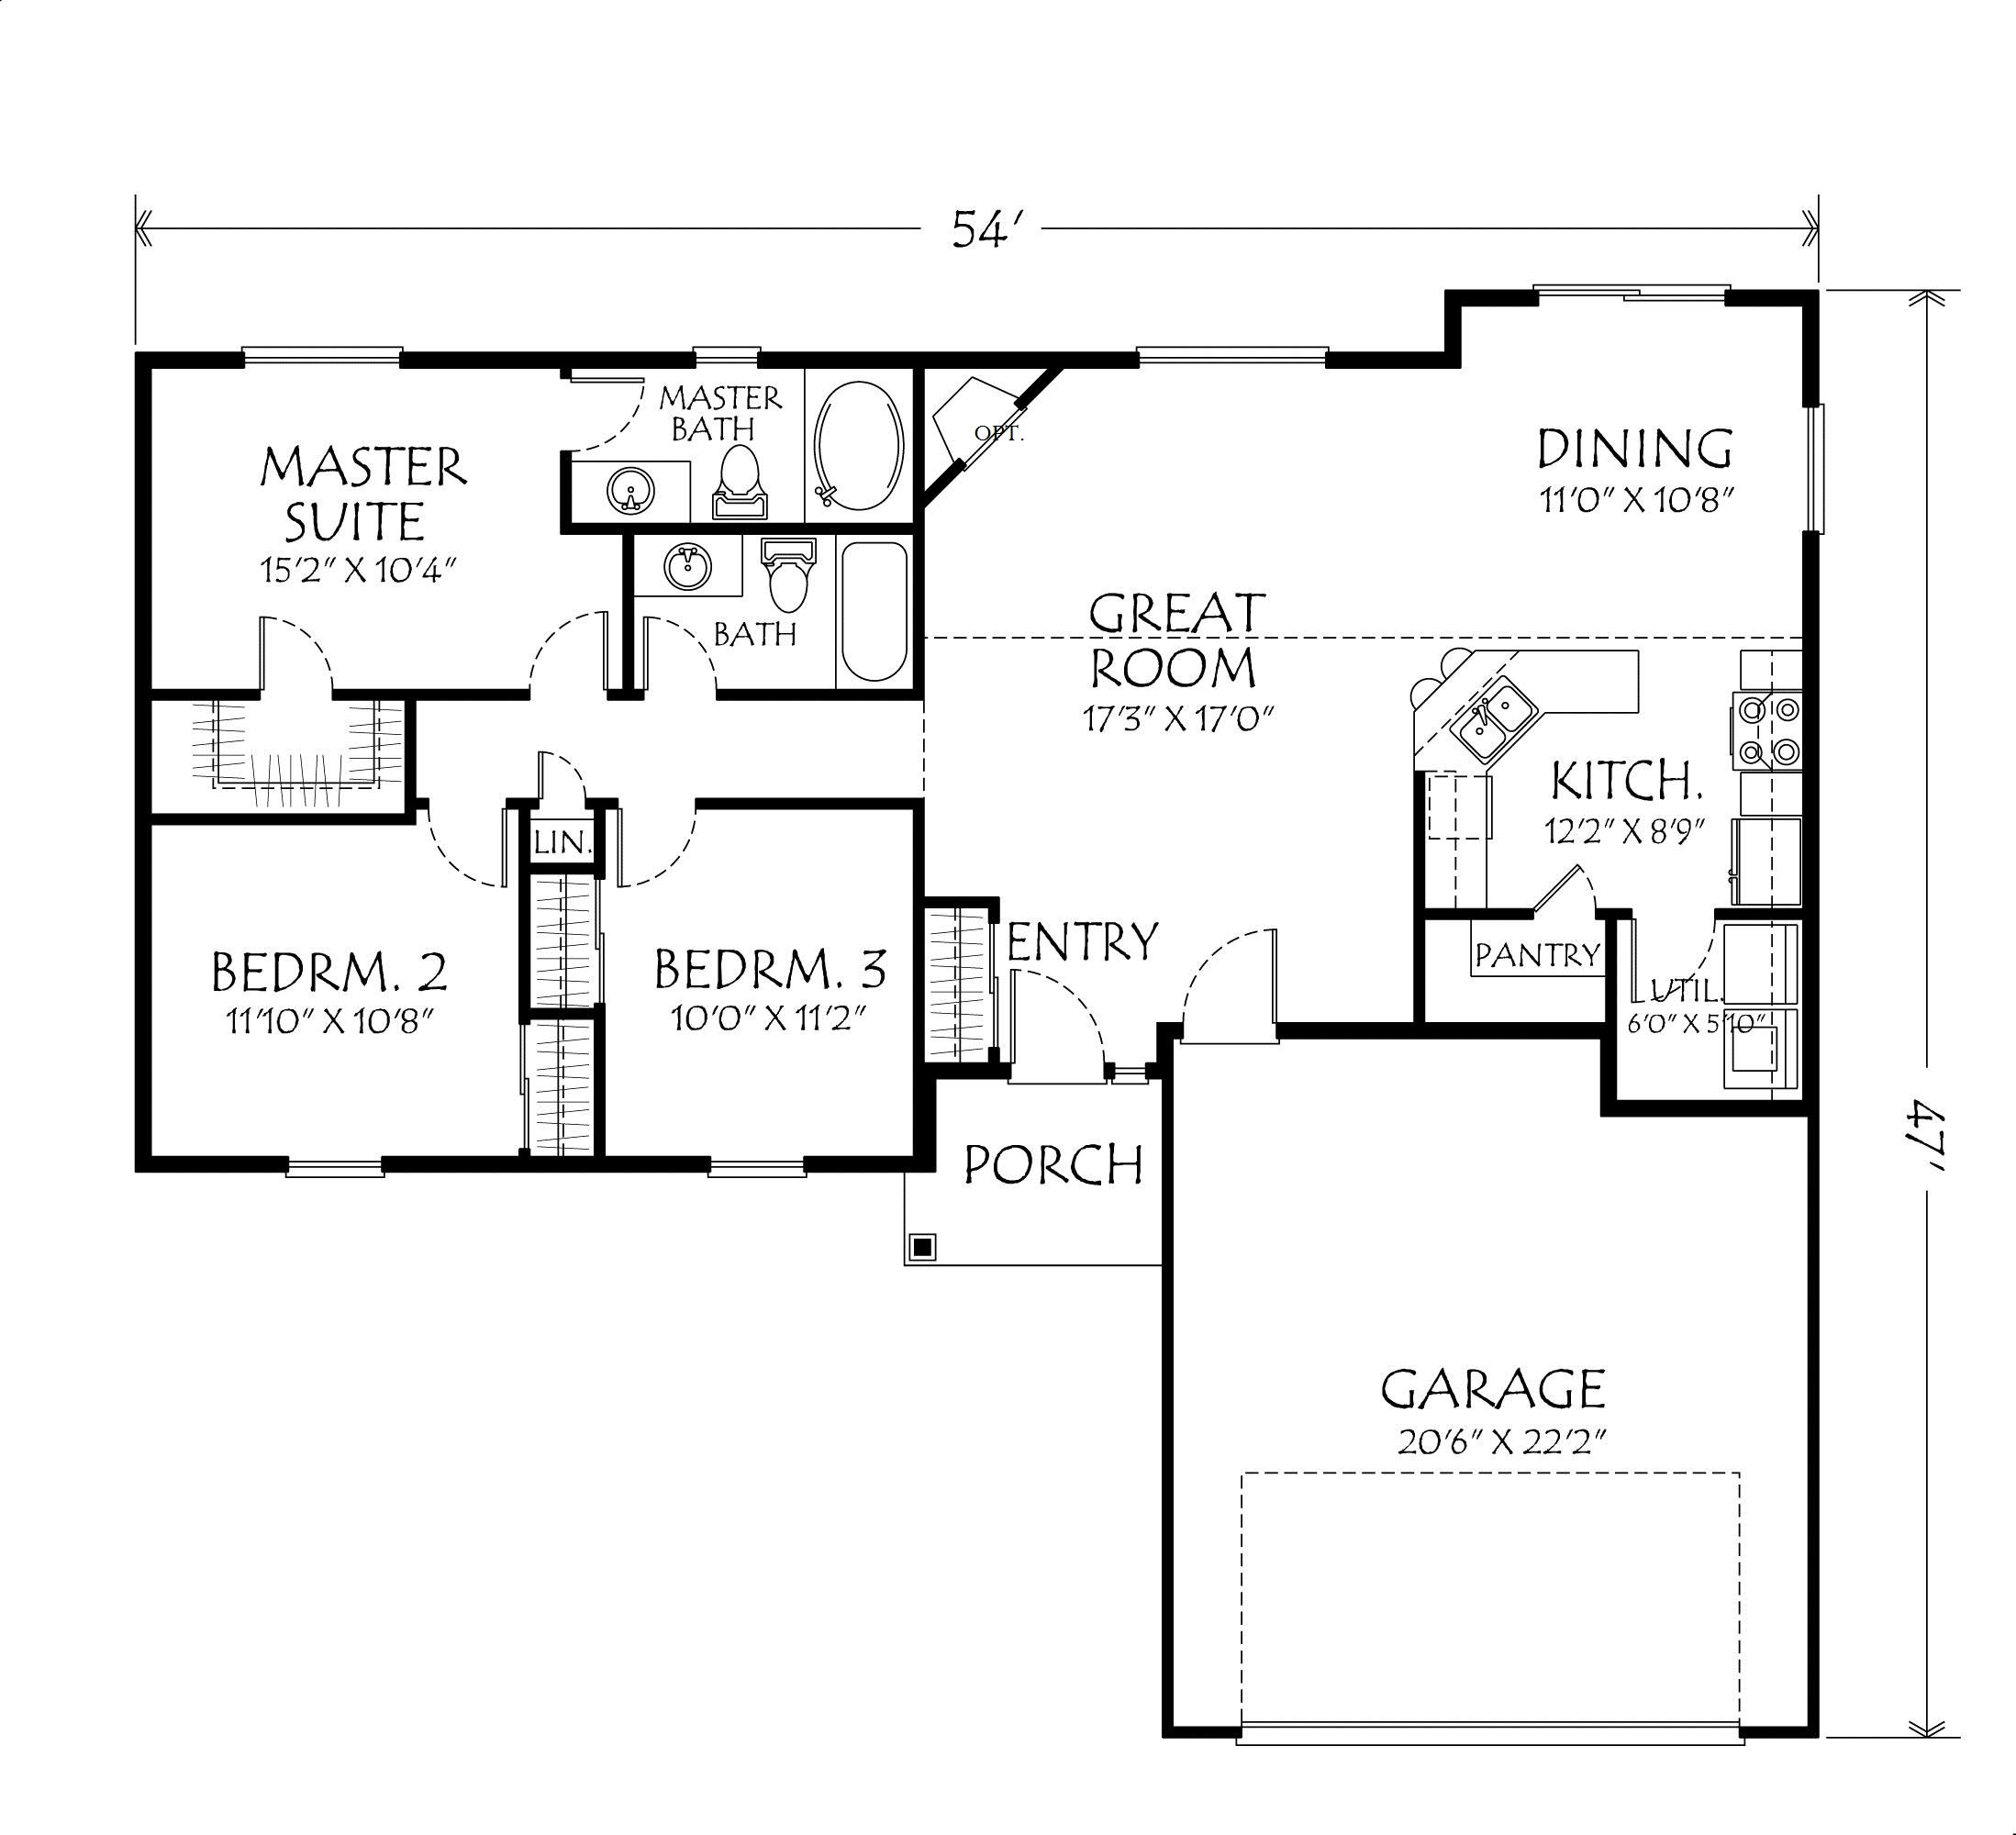 1 Bedroom 2 Bathroom House Plans Single 43story 43open 43floor 43plans Single Story Plan 3